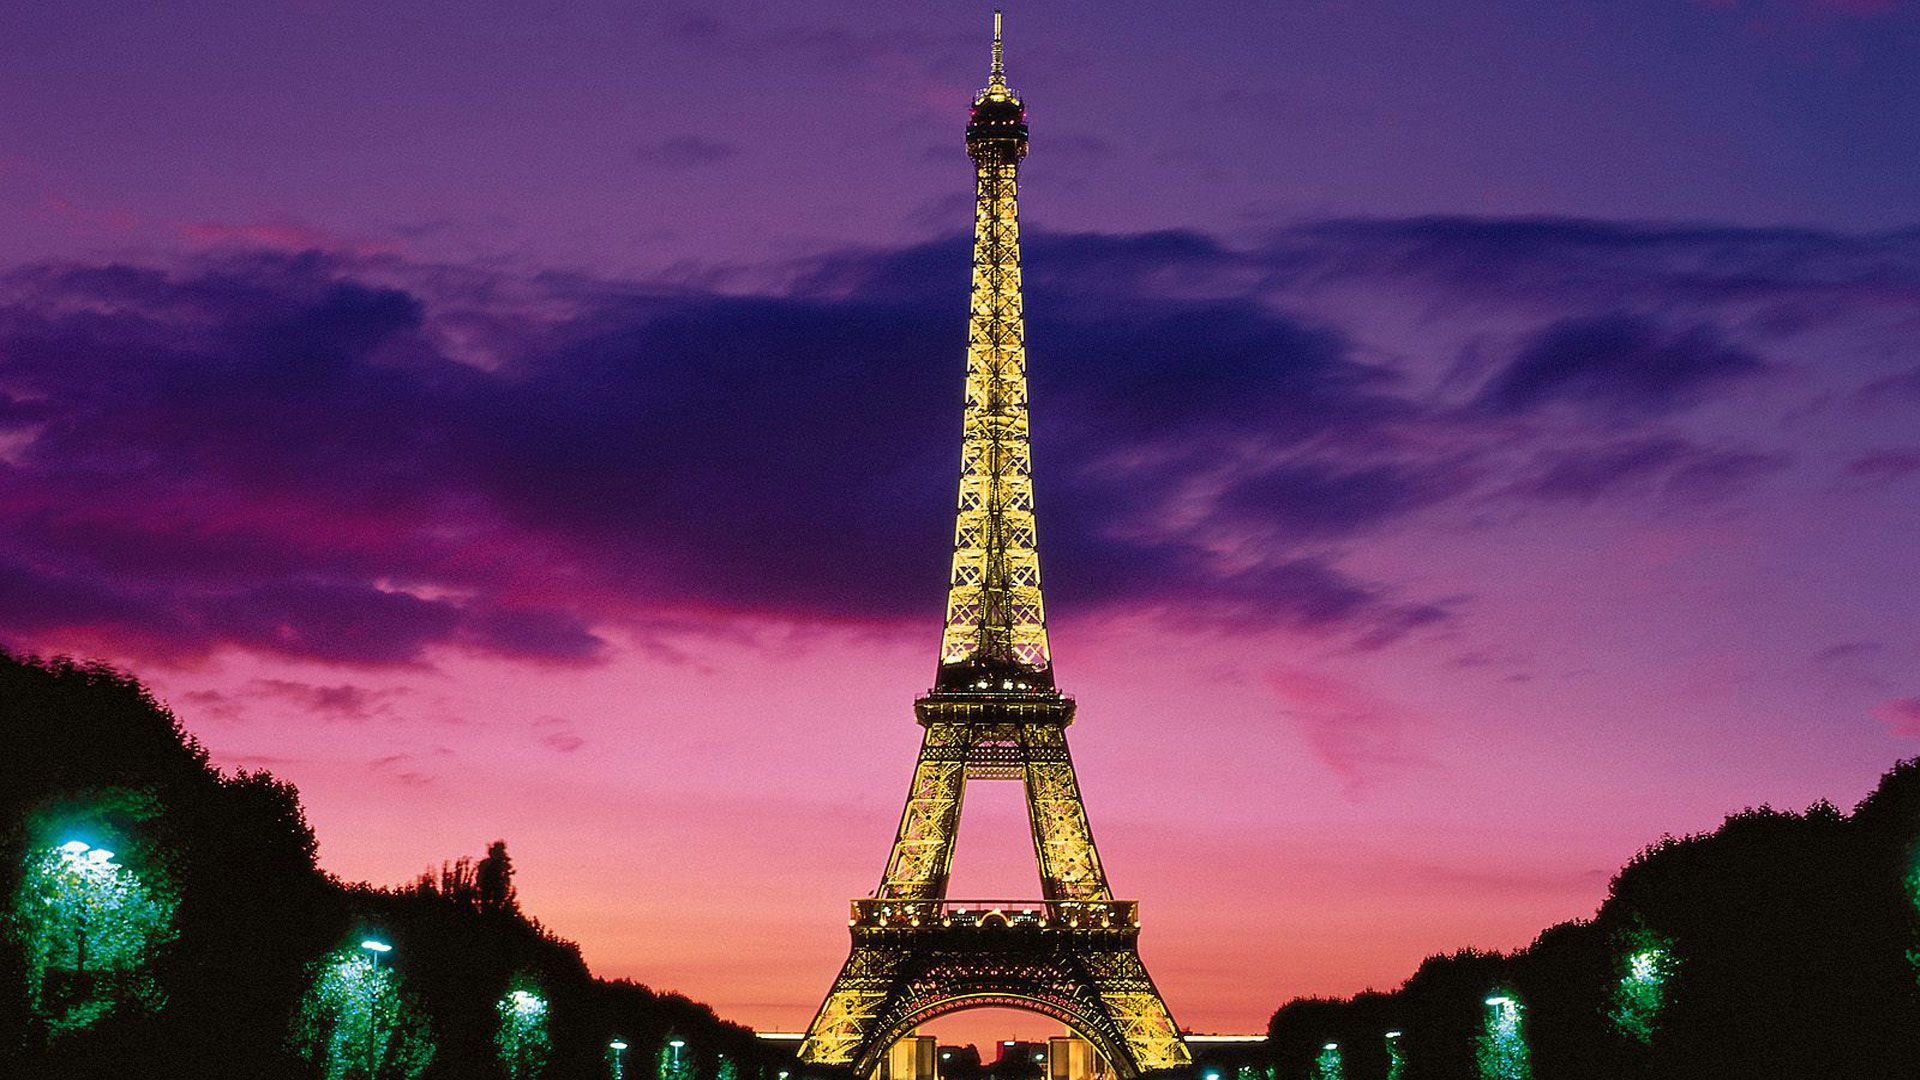 hd pics photos stunning attractive eiffel tower 11 hd desktop background wallpaper